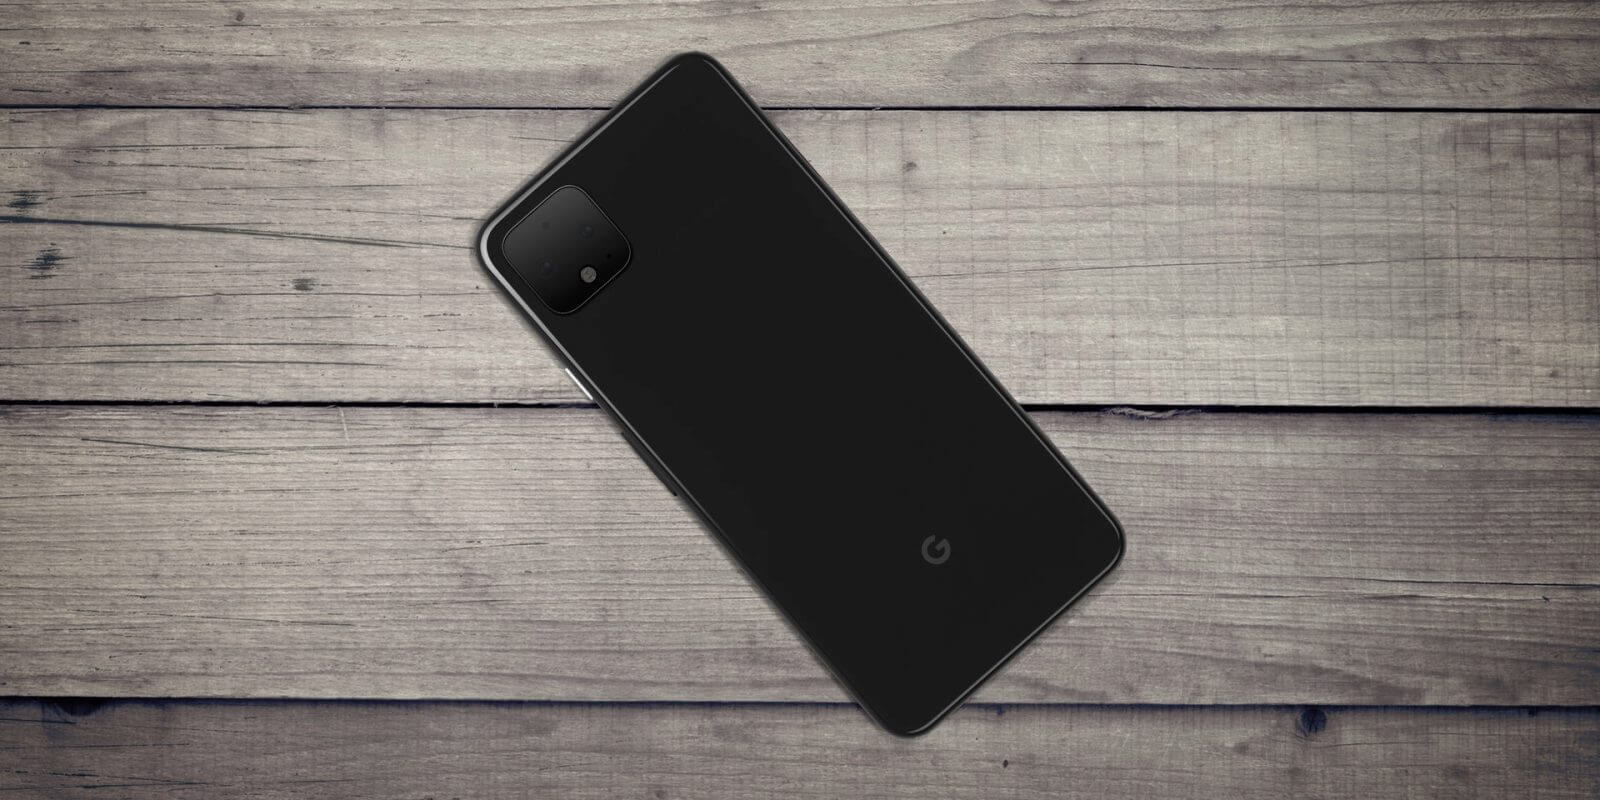 Google Pixel 4 XL early hands-on reveals thick bezels, thick sides